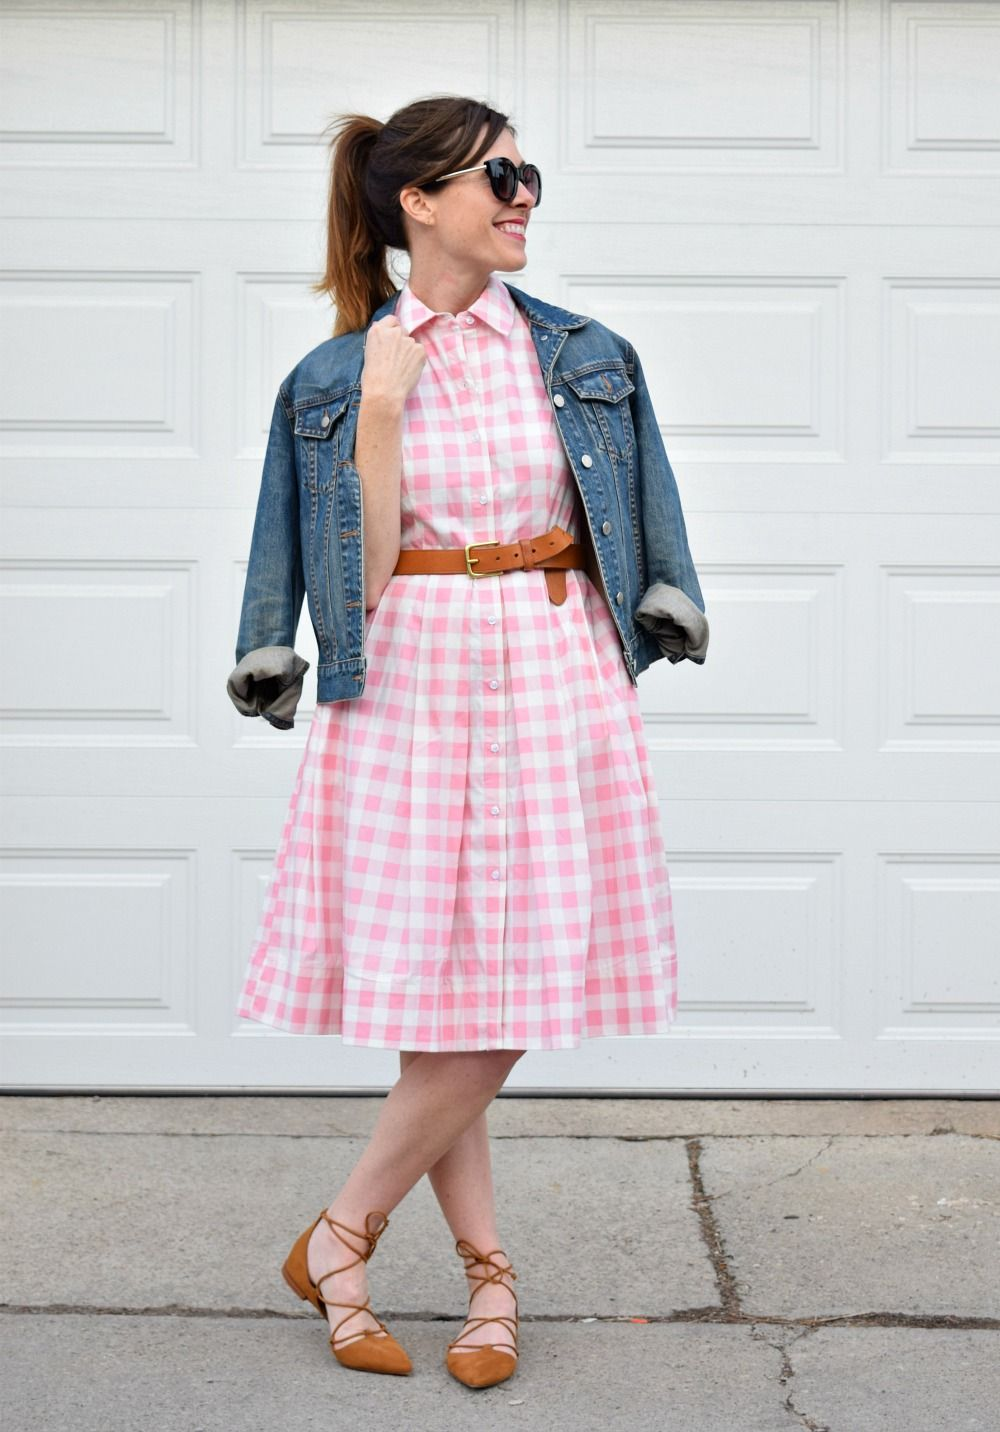 Putting Together the Perfect Spring Outfit | Pink dress, Jackets ...